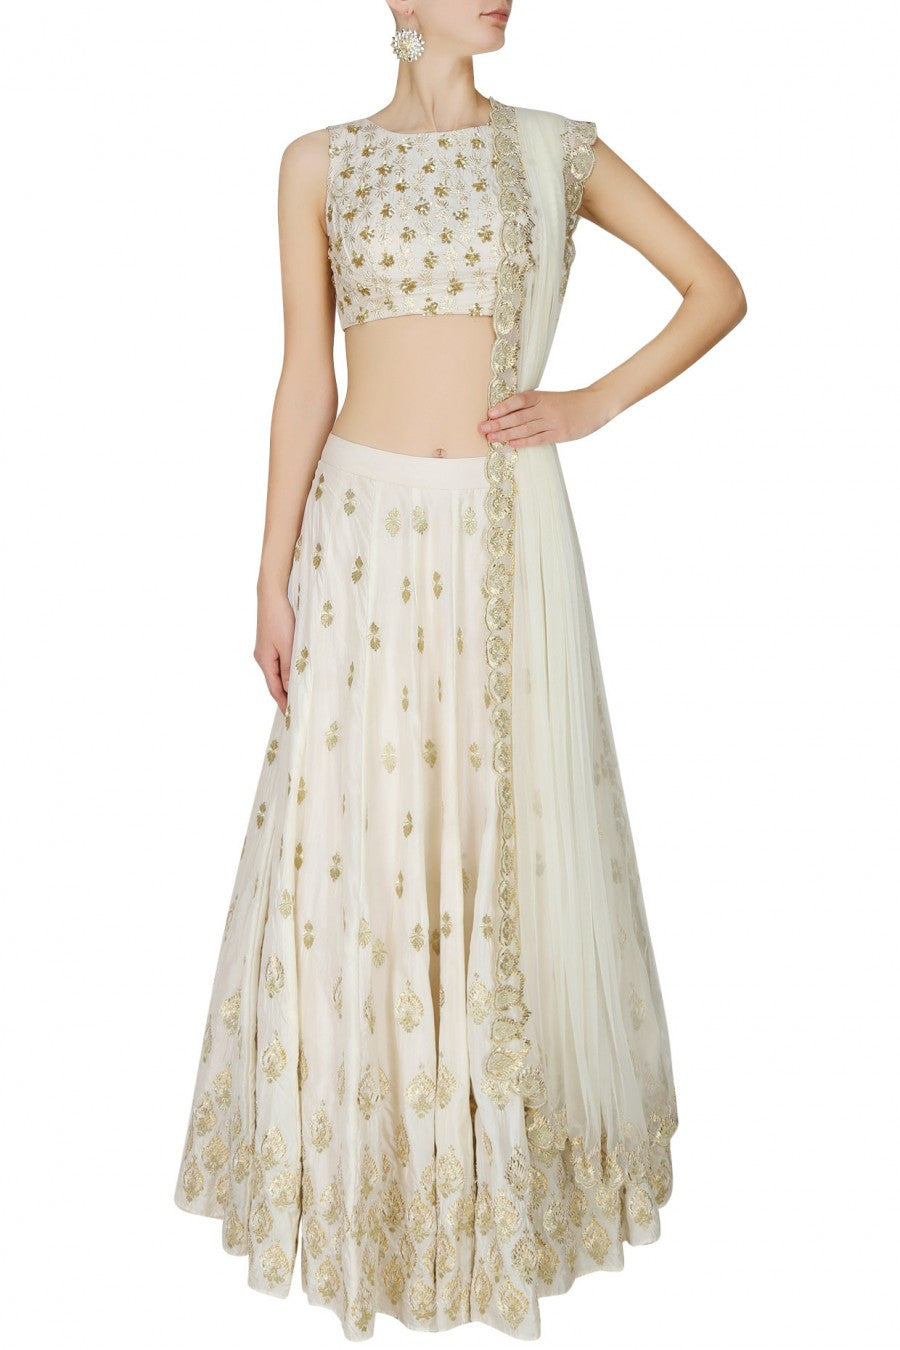 Ivory lehenga choli with gold embroidery